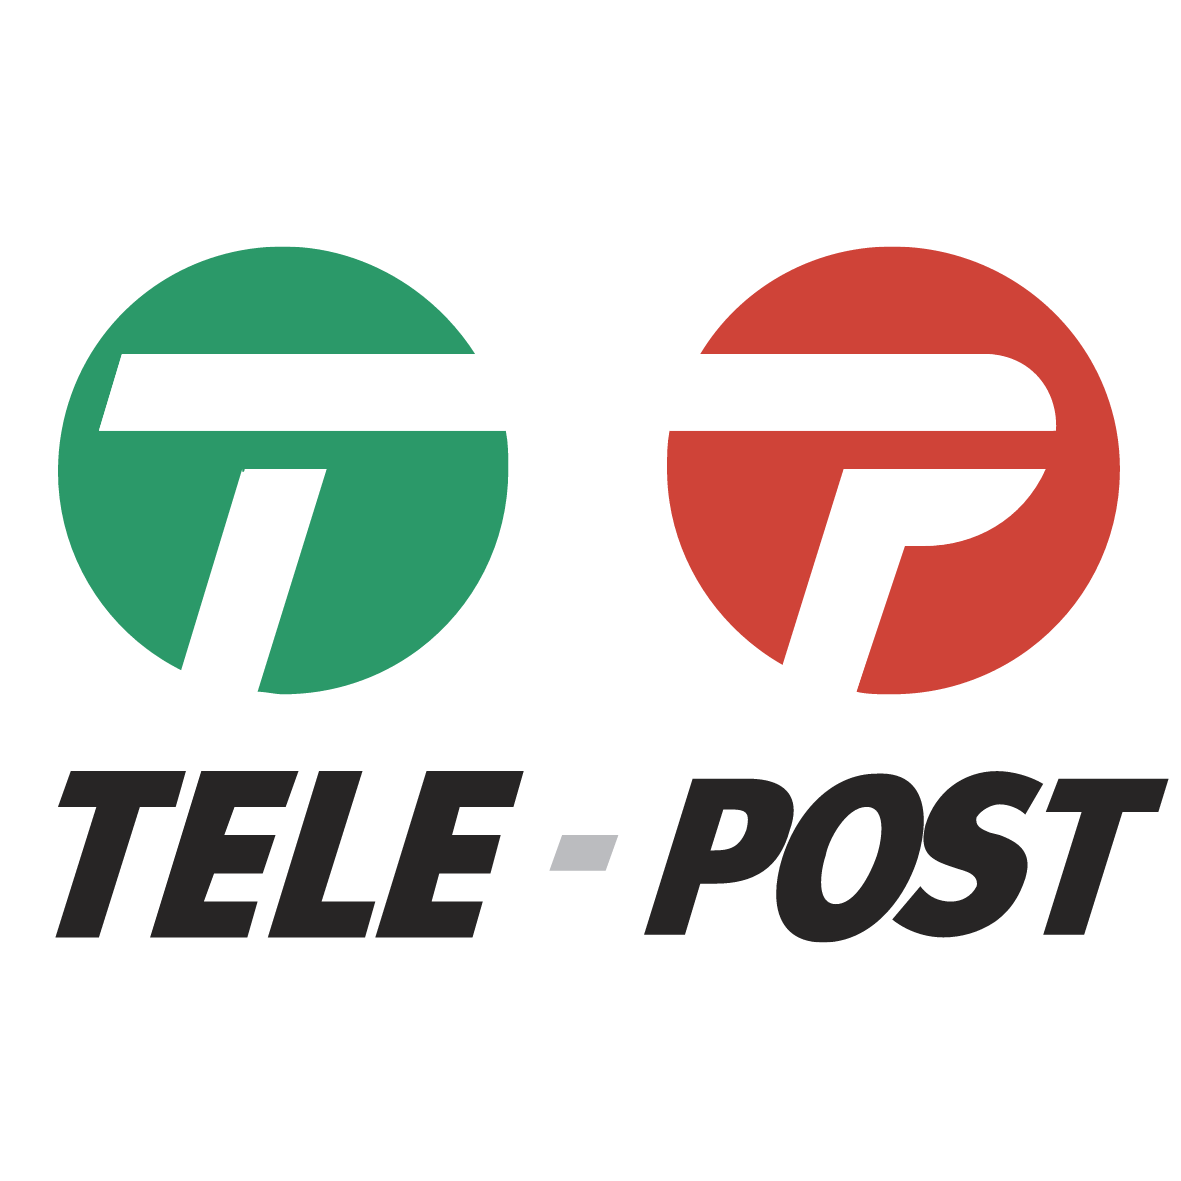 Tele Post tracking